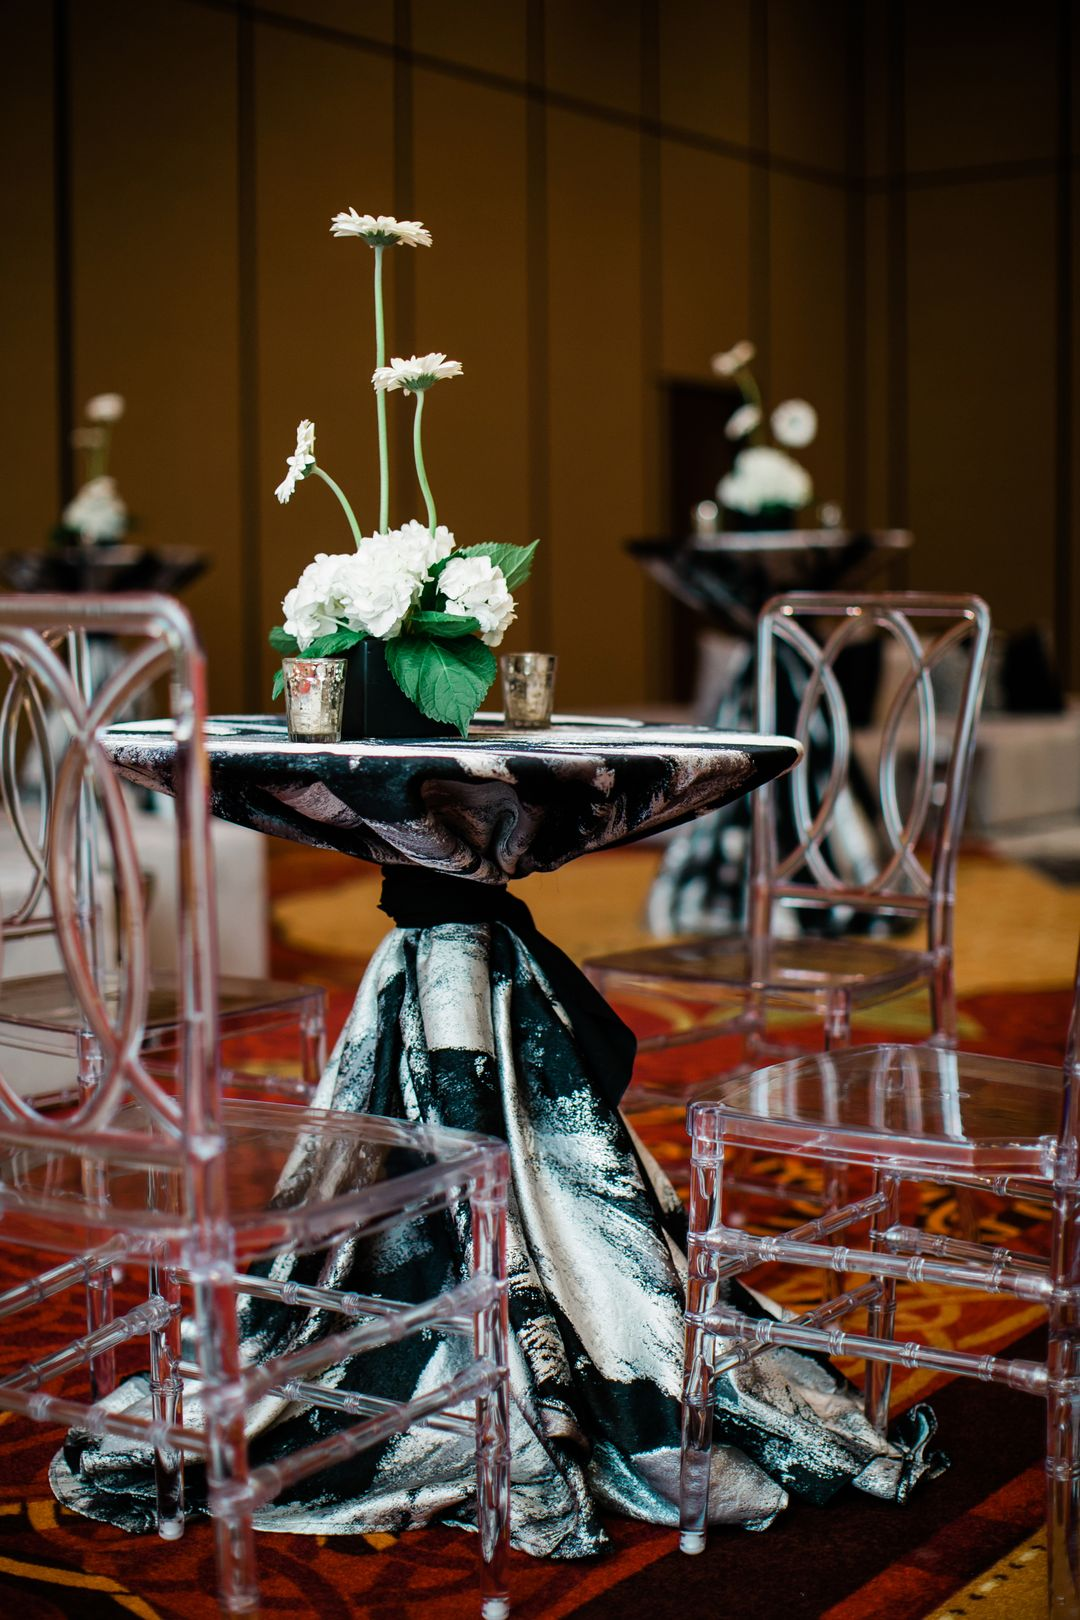 acrylic chairs for event